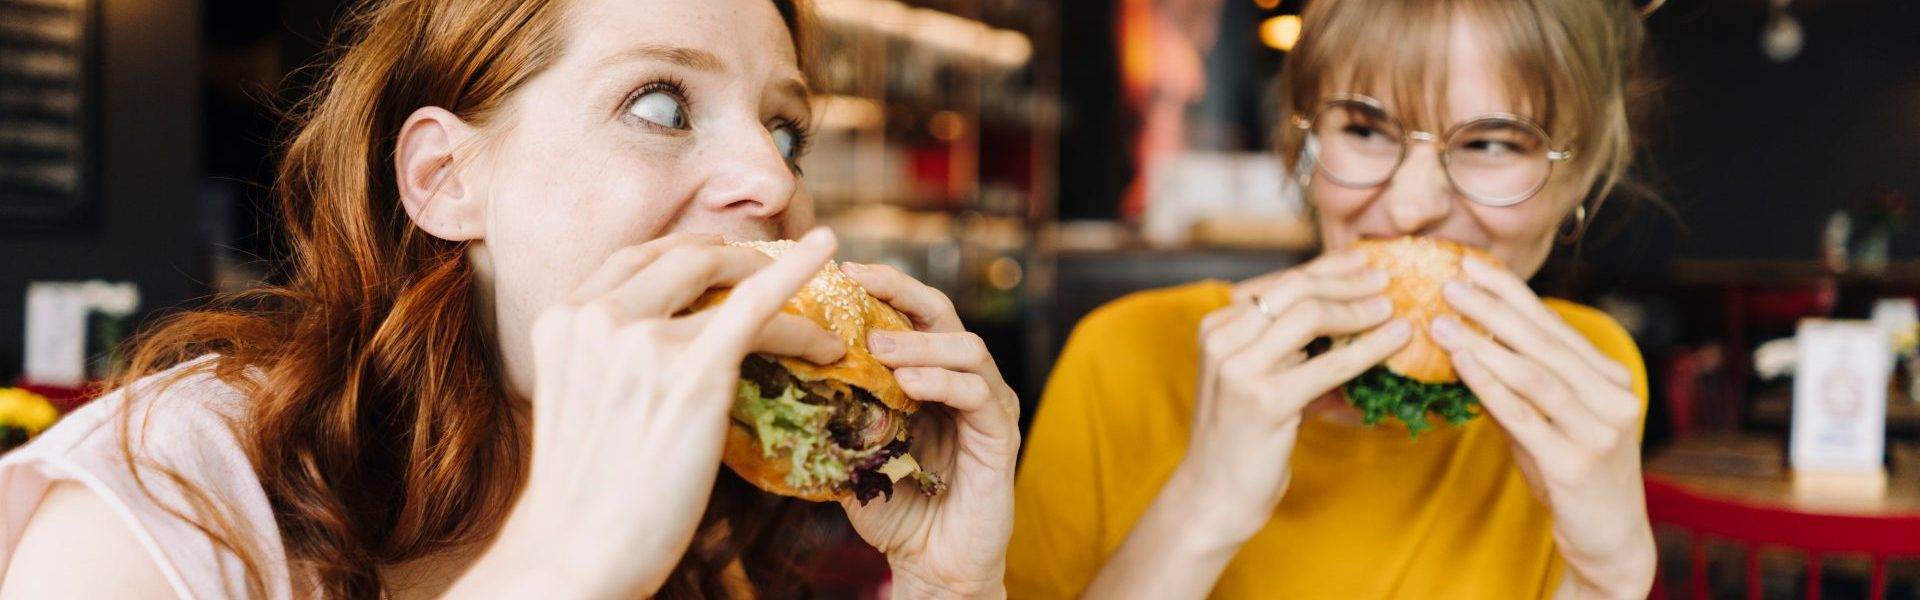 Two female friends eating burger in a restaurant